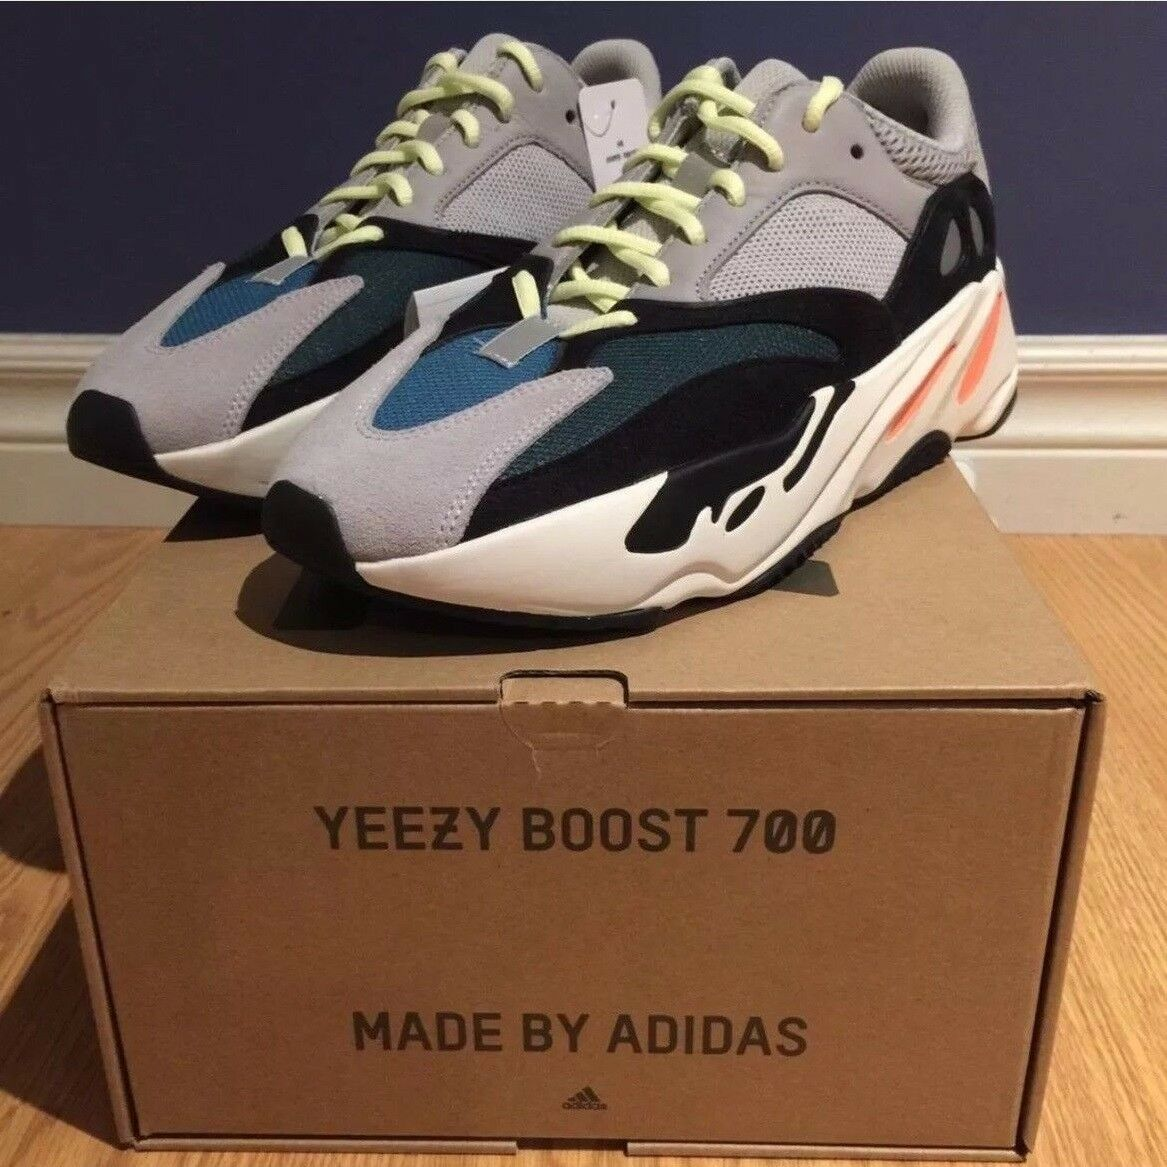 BNIB Adidas Yeezy Boost 700 Wave Runner US Sz 10 or 44, V2 500, Ready to Ship.